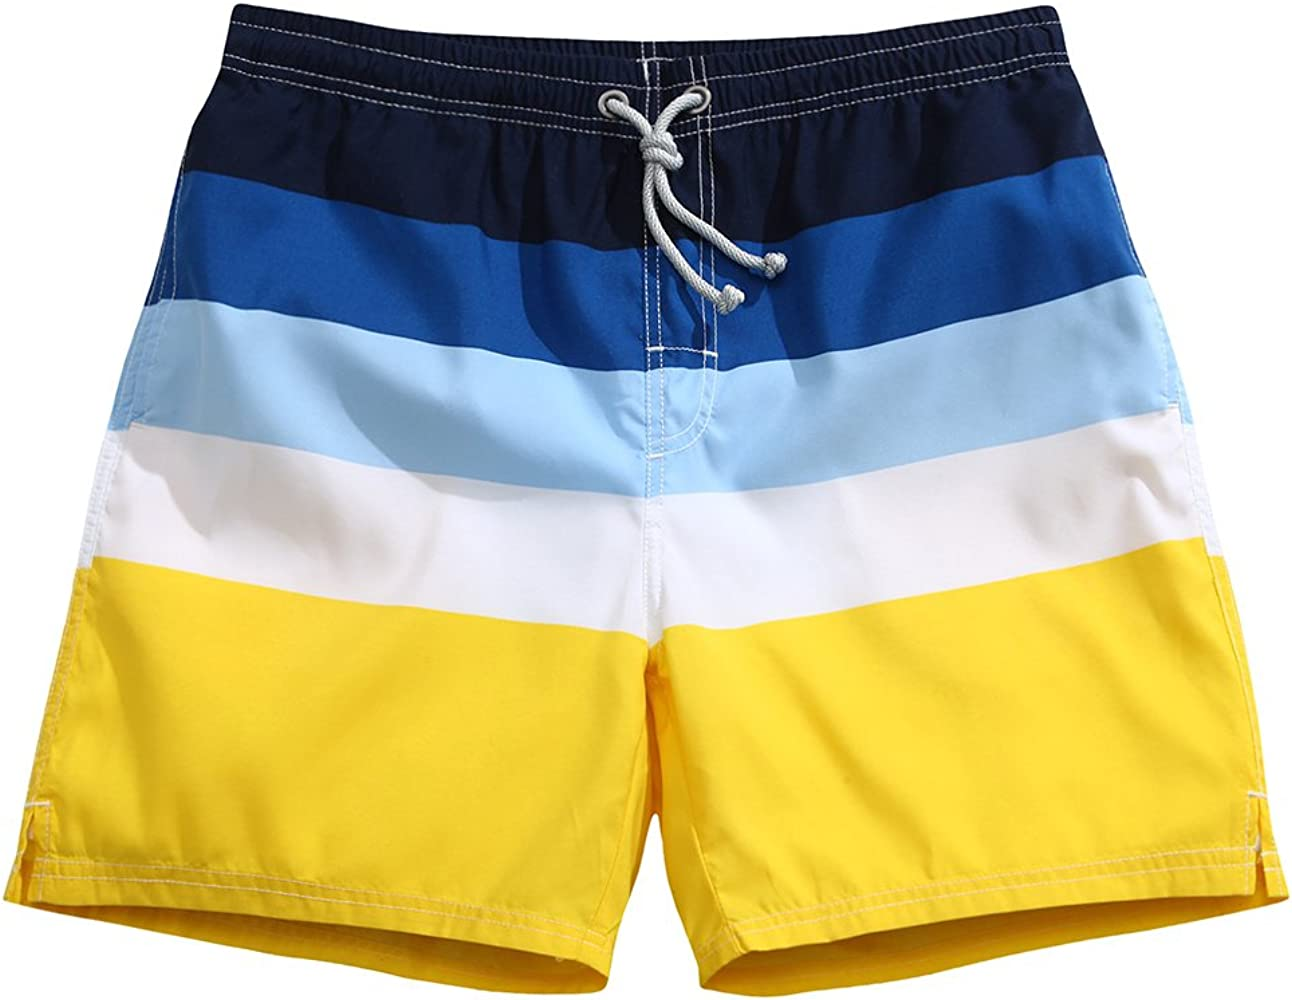 1fceeaa9c9 Men's Swim Trunks Quick Dry Board Shorts Bathing Suits Sands & Sea ...